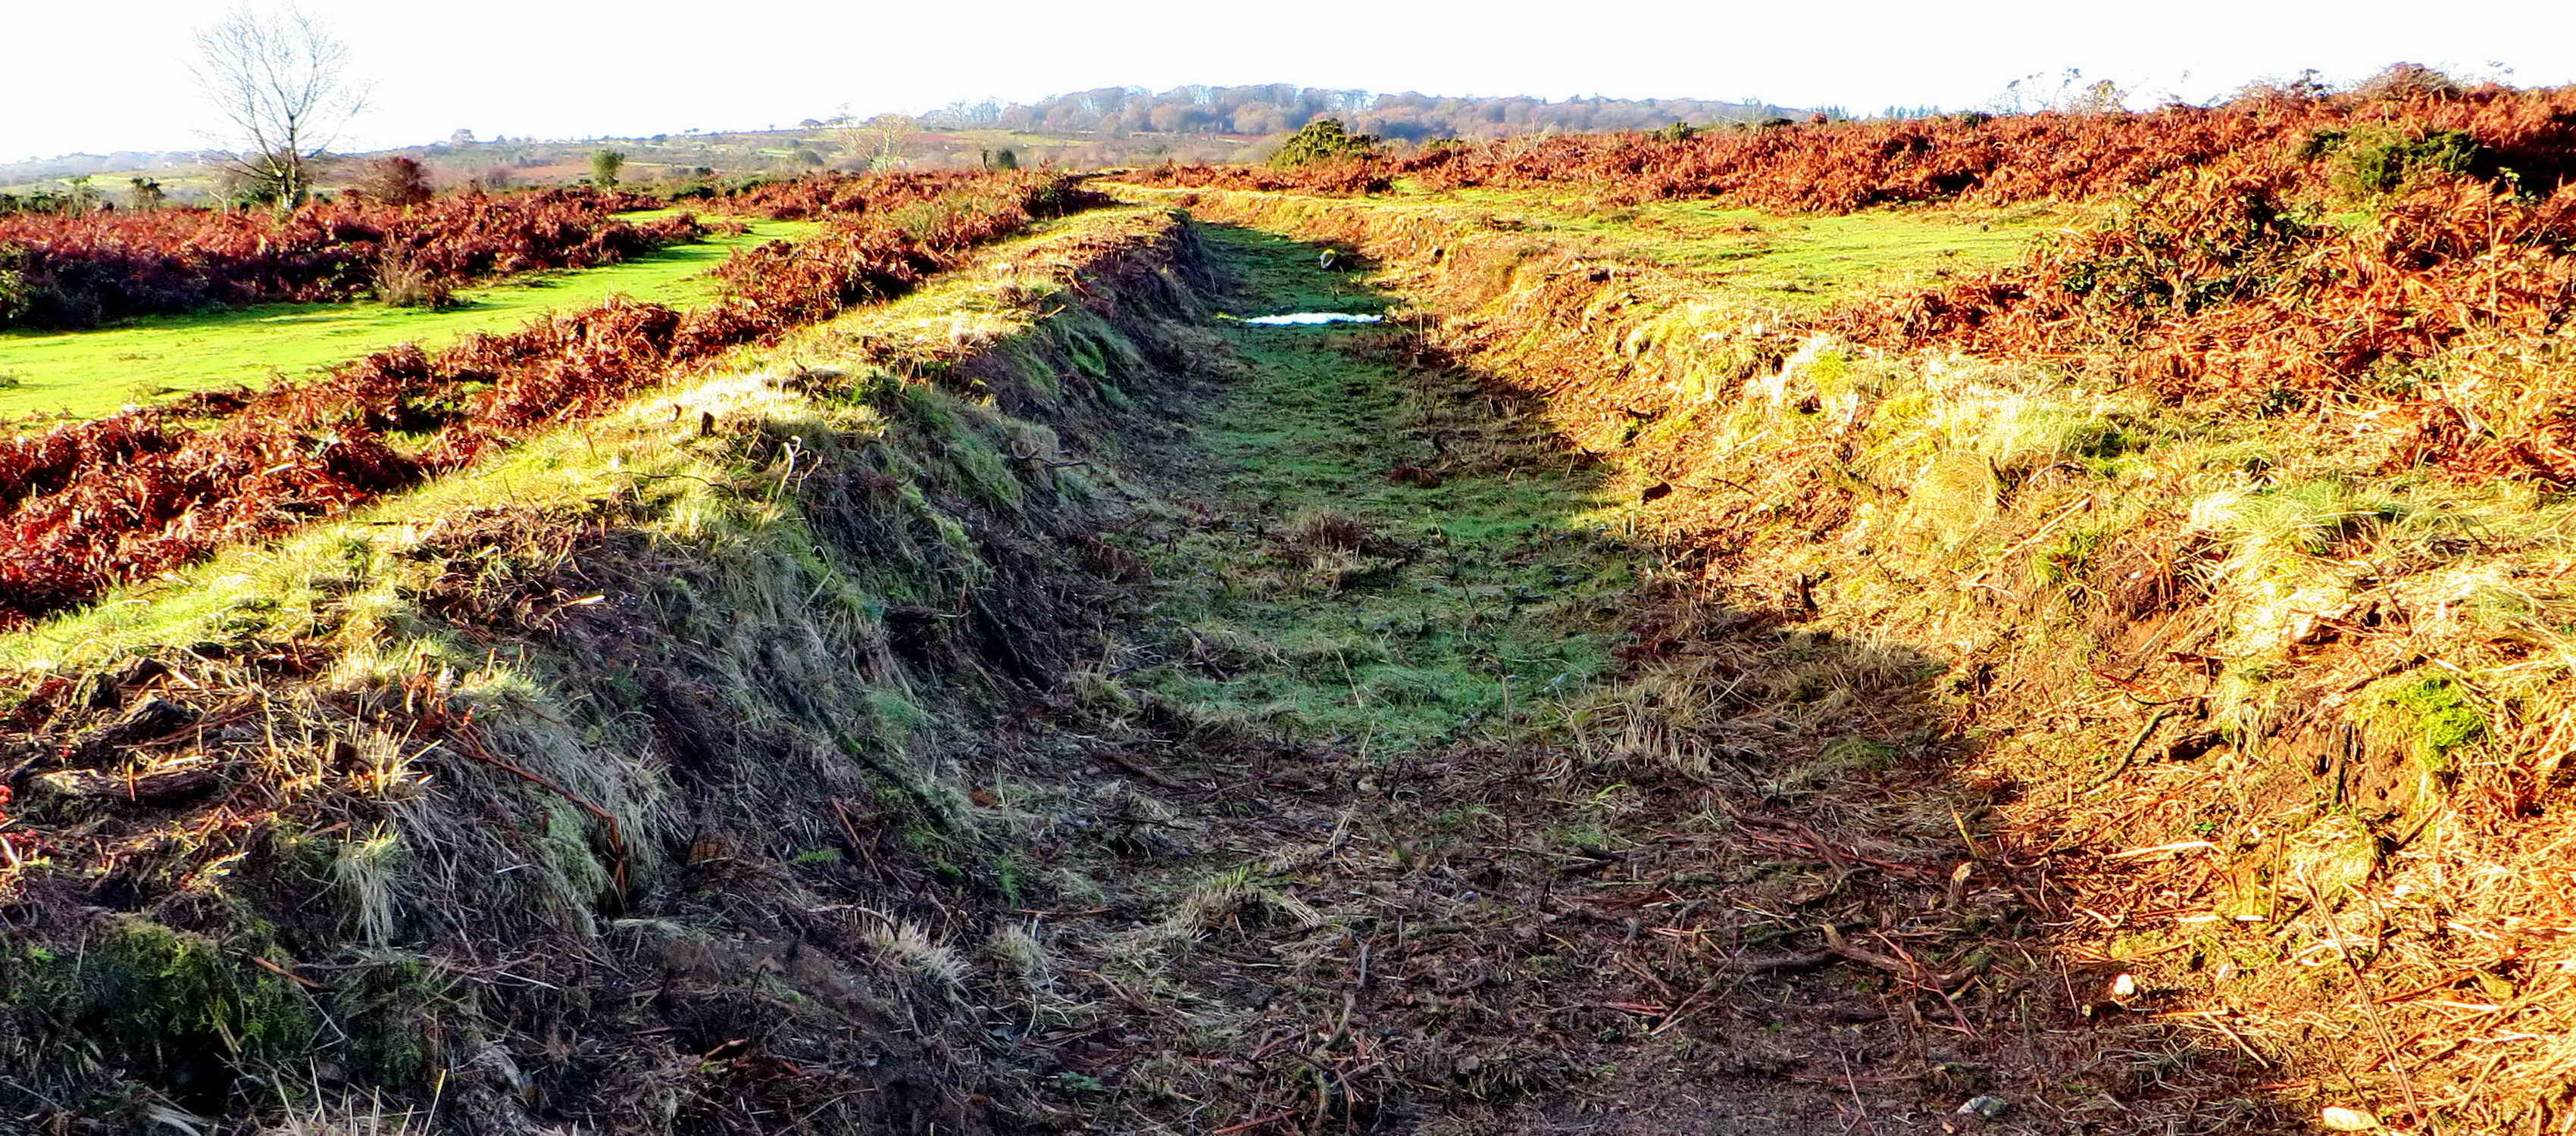 Looking along the section of leat already cleared.